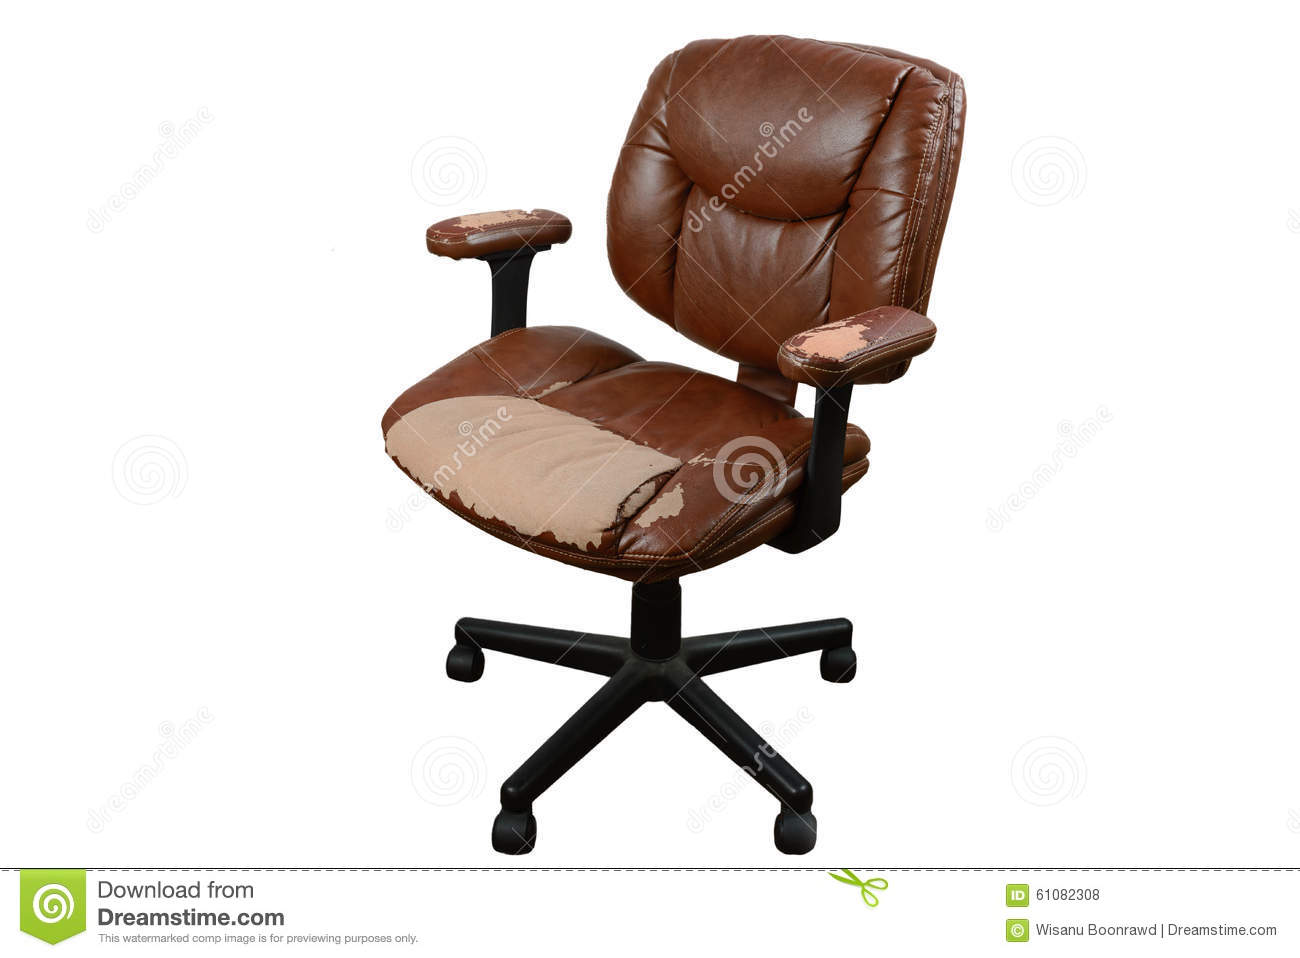 worn out brown leather office chair isolate background brown leather office chairs